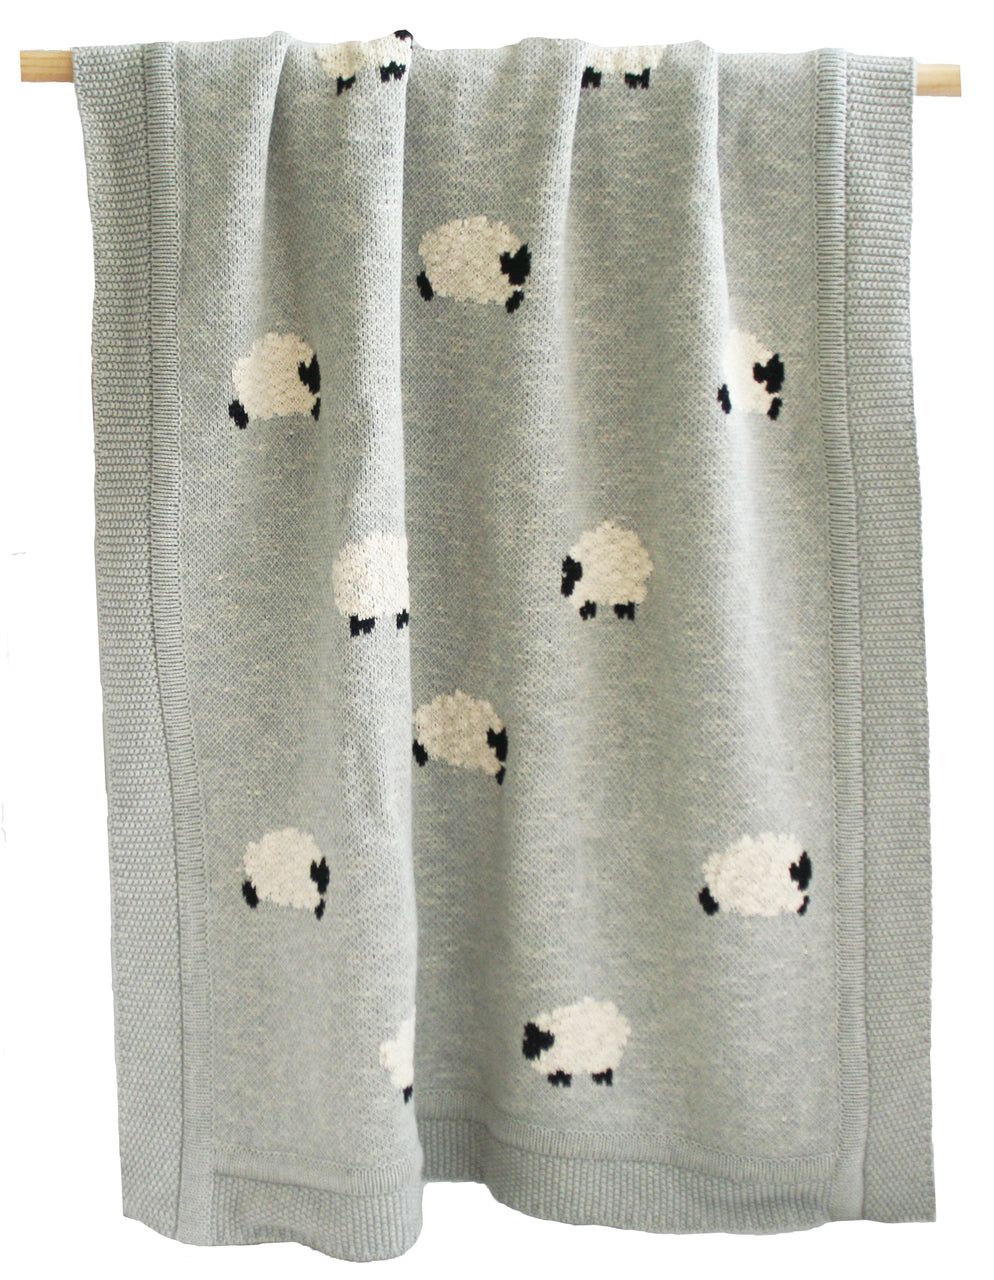 Grey knit blanket with sheep on it